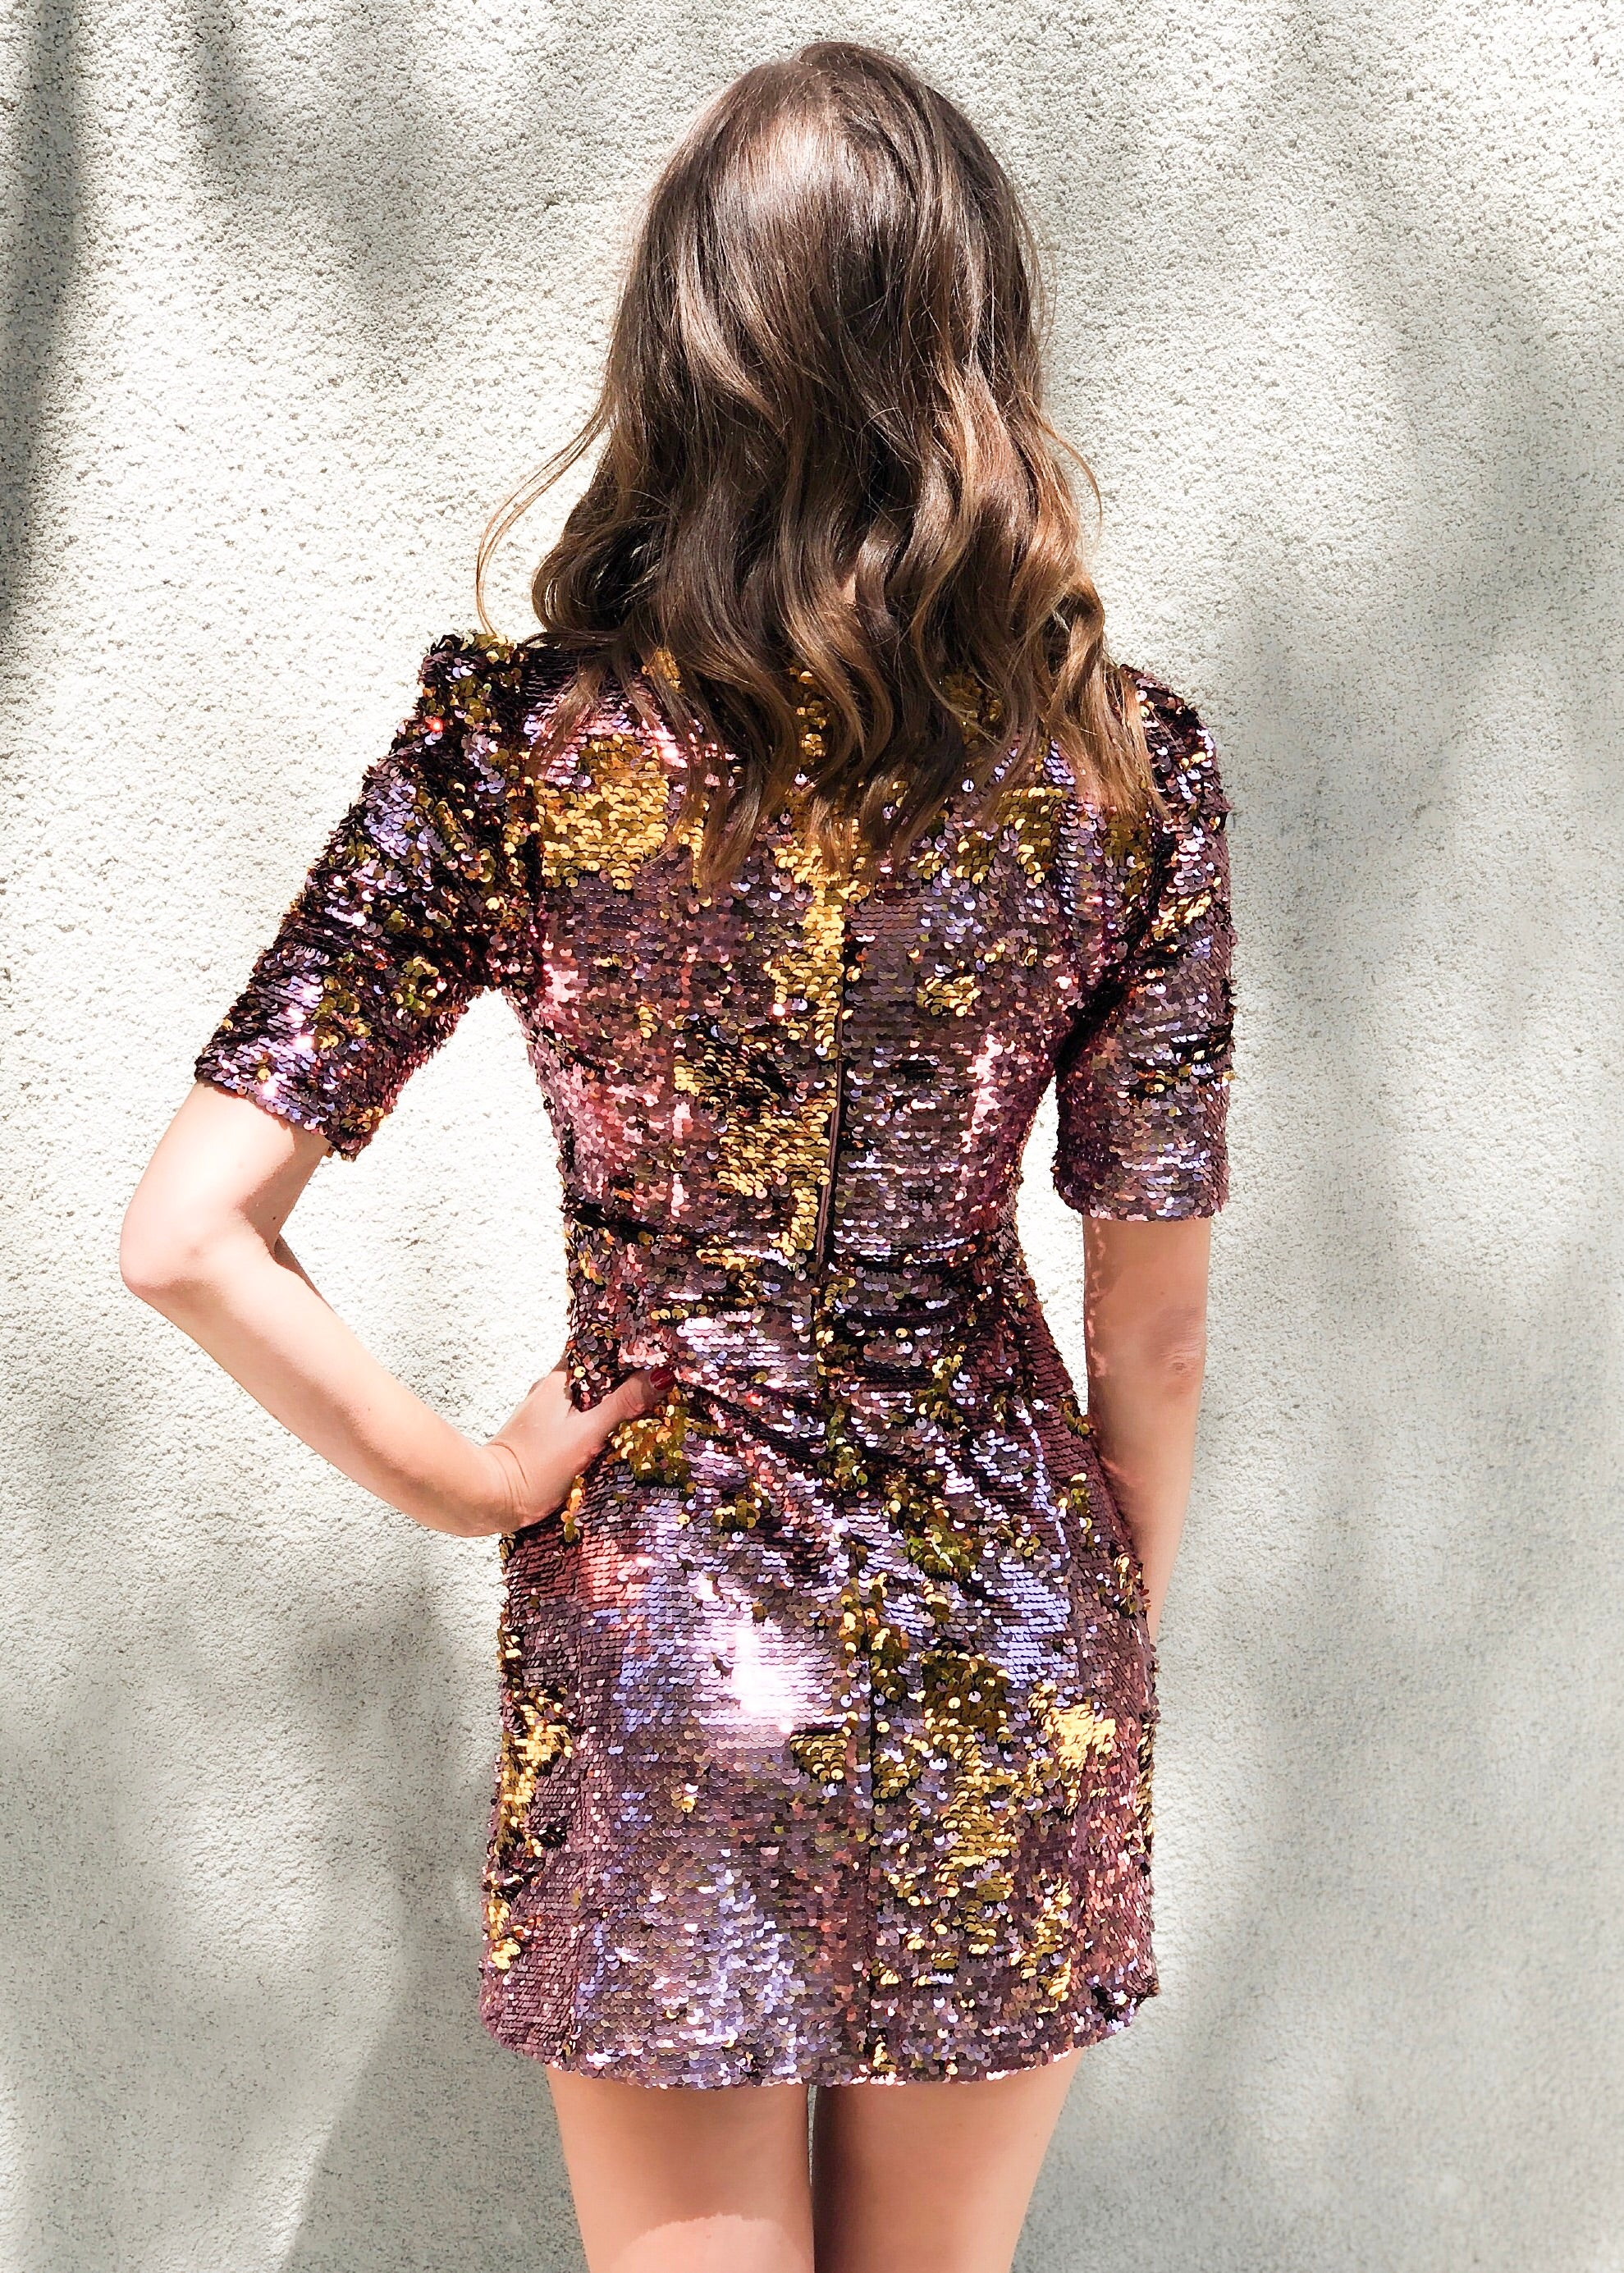 dc5f40e6de0f For Love and Lemons - Sparklers Party Mini Dress - Dusty Pink Sequin ...